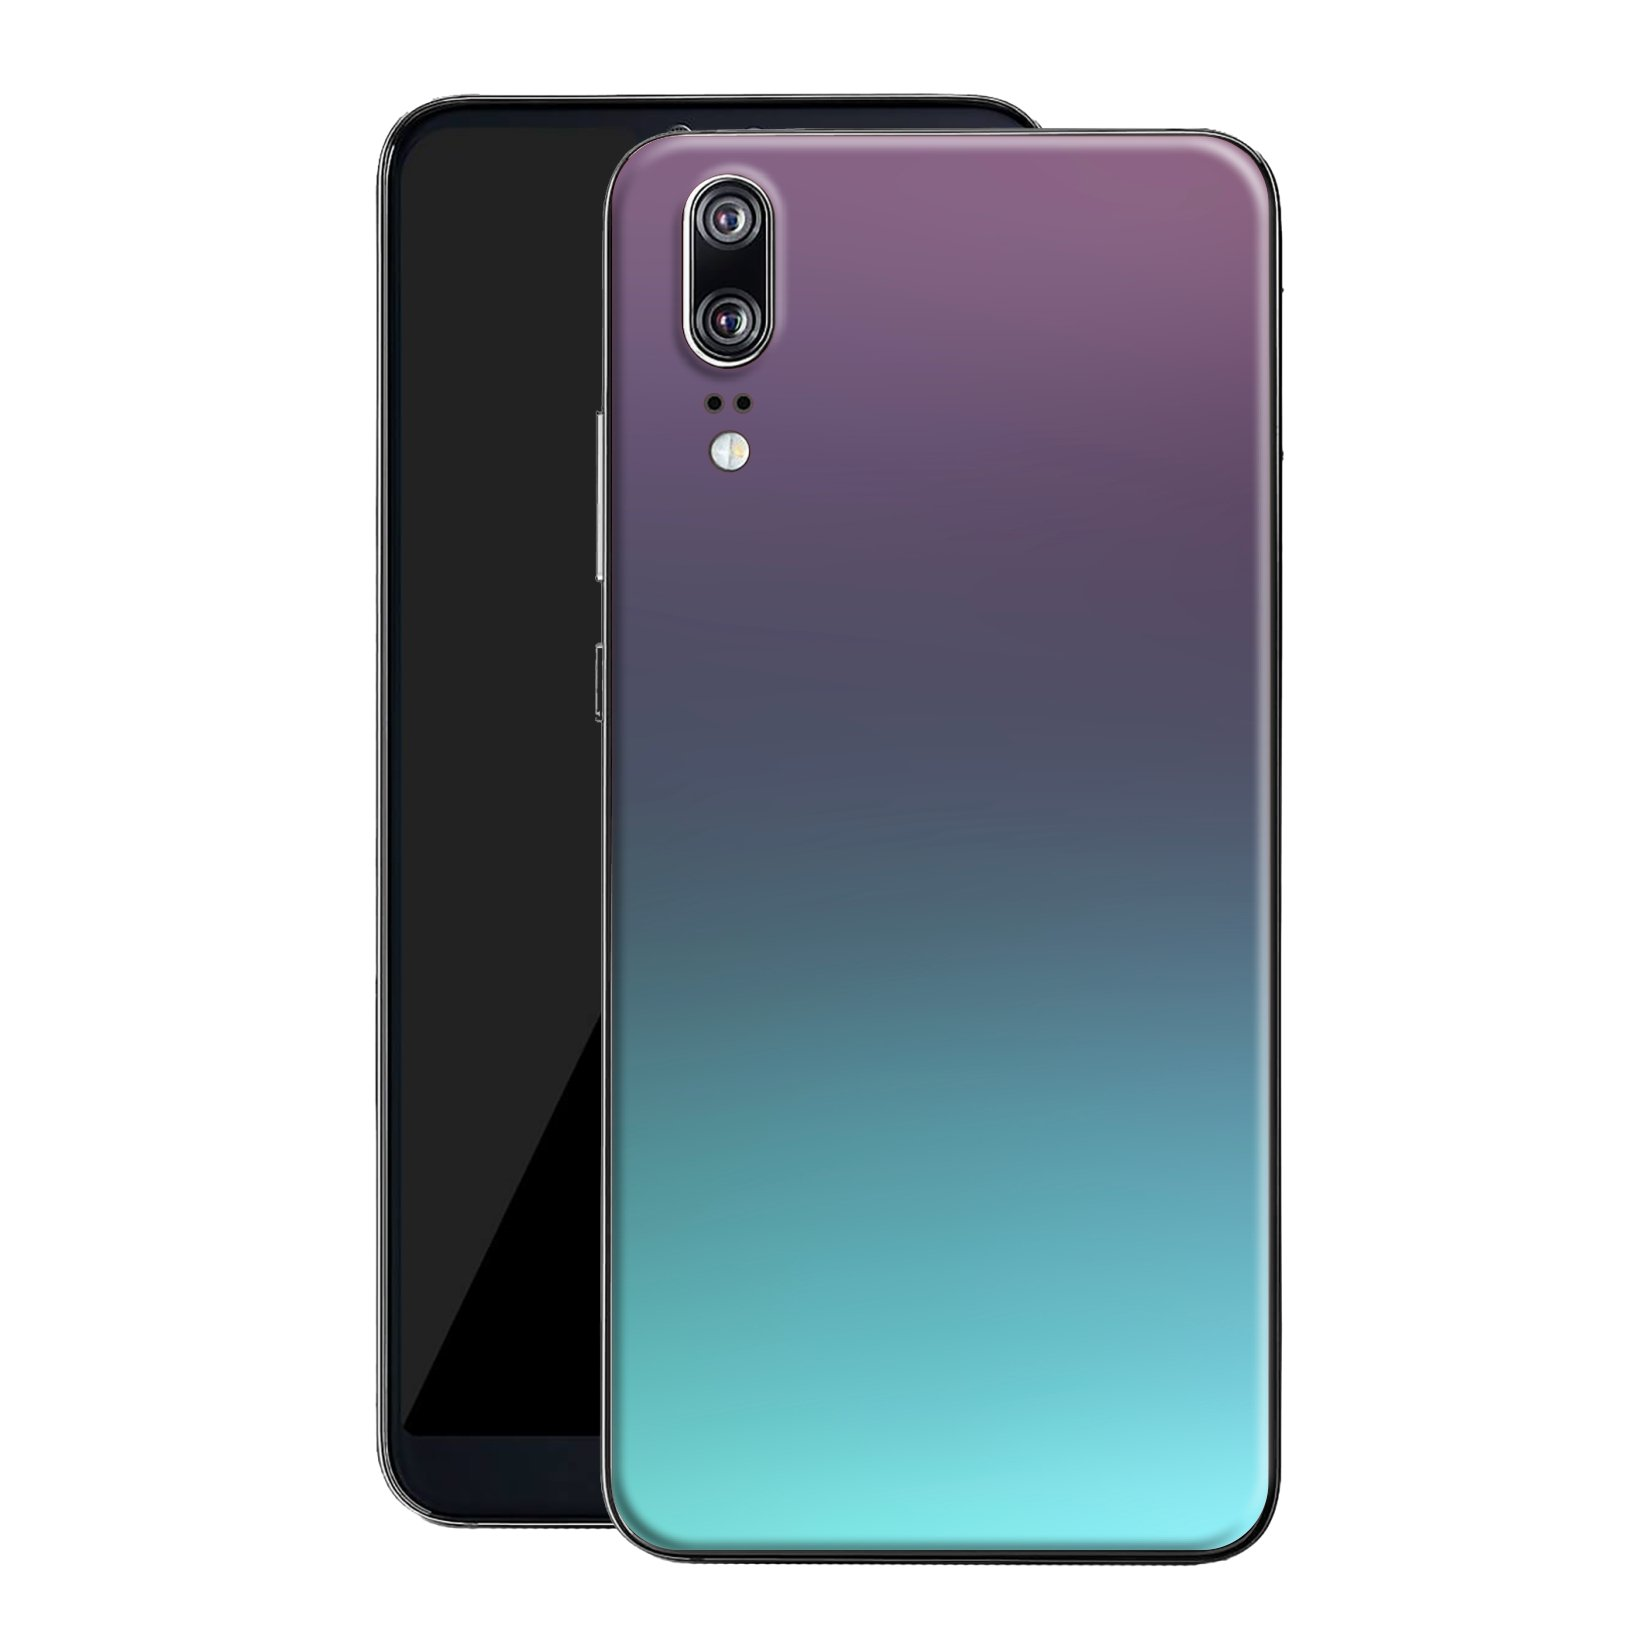 Huawei P20 Chameleon Turquoise Lavender Colour-Changing Skin, Decal, Wrap, Protector, Cover by EasySkinz | EasySkinz.com